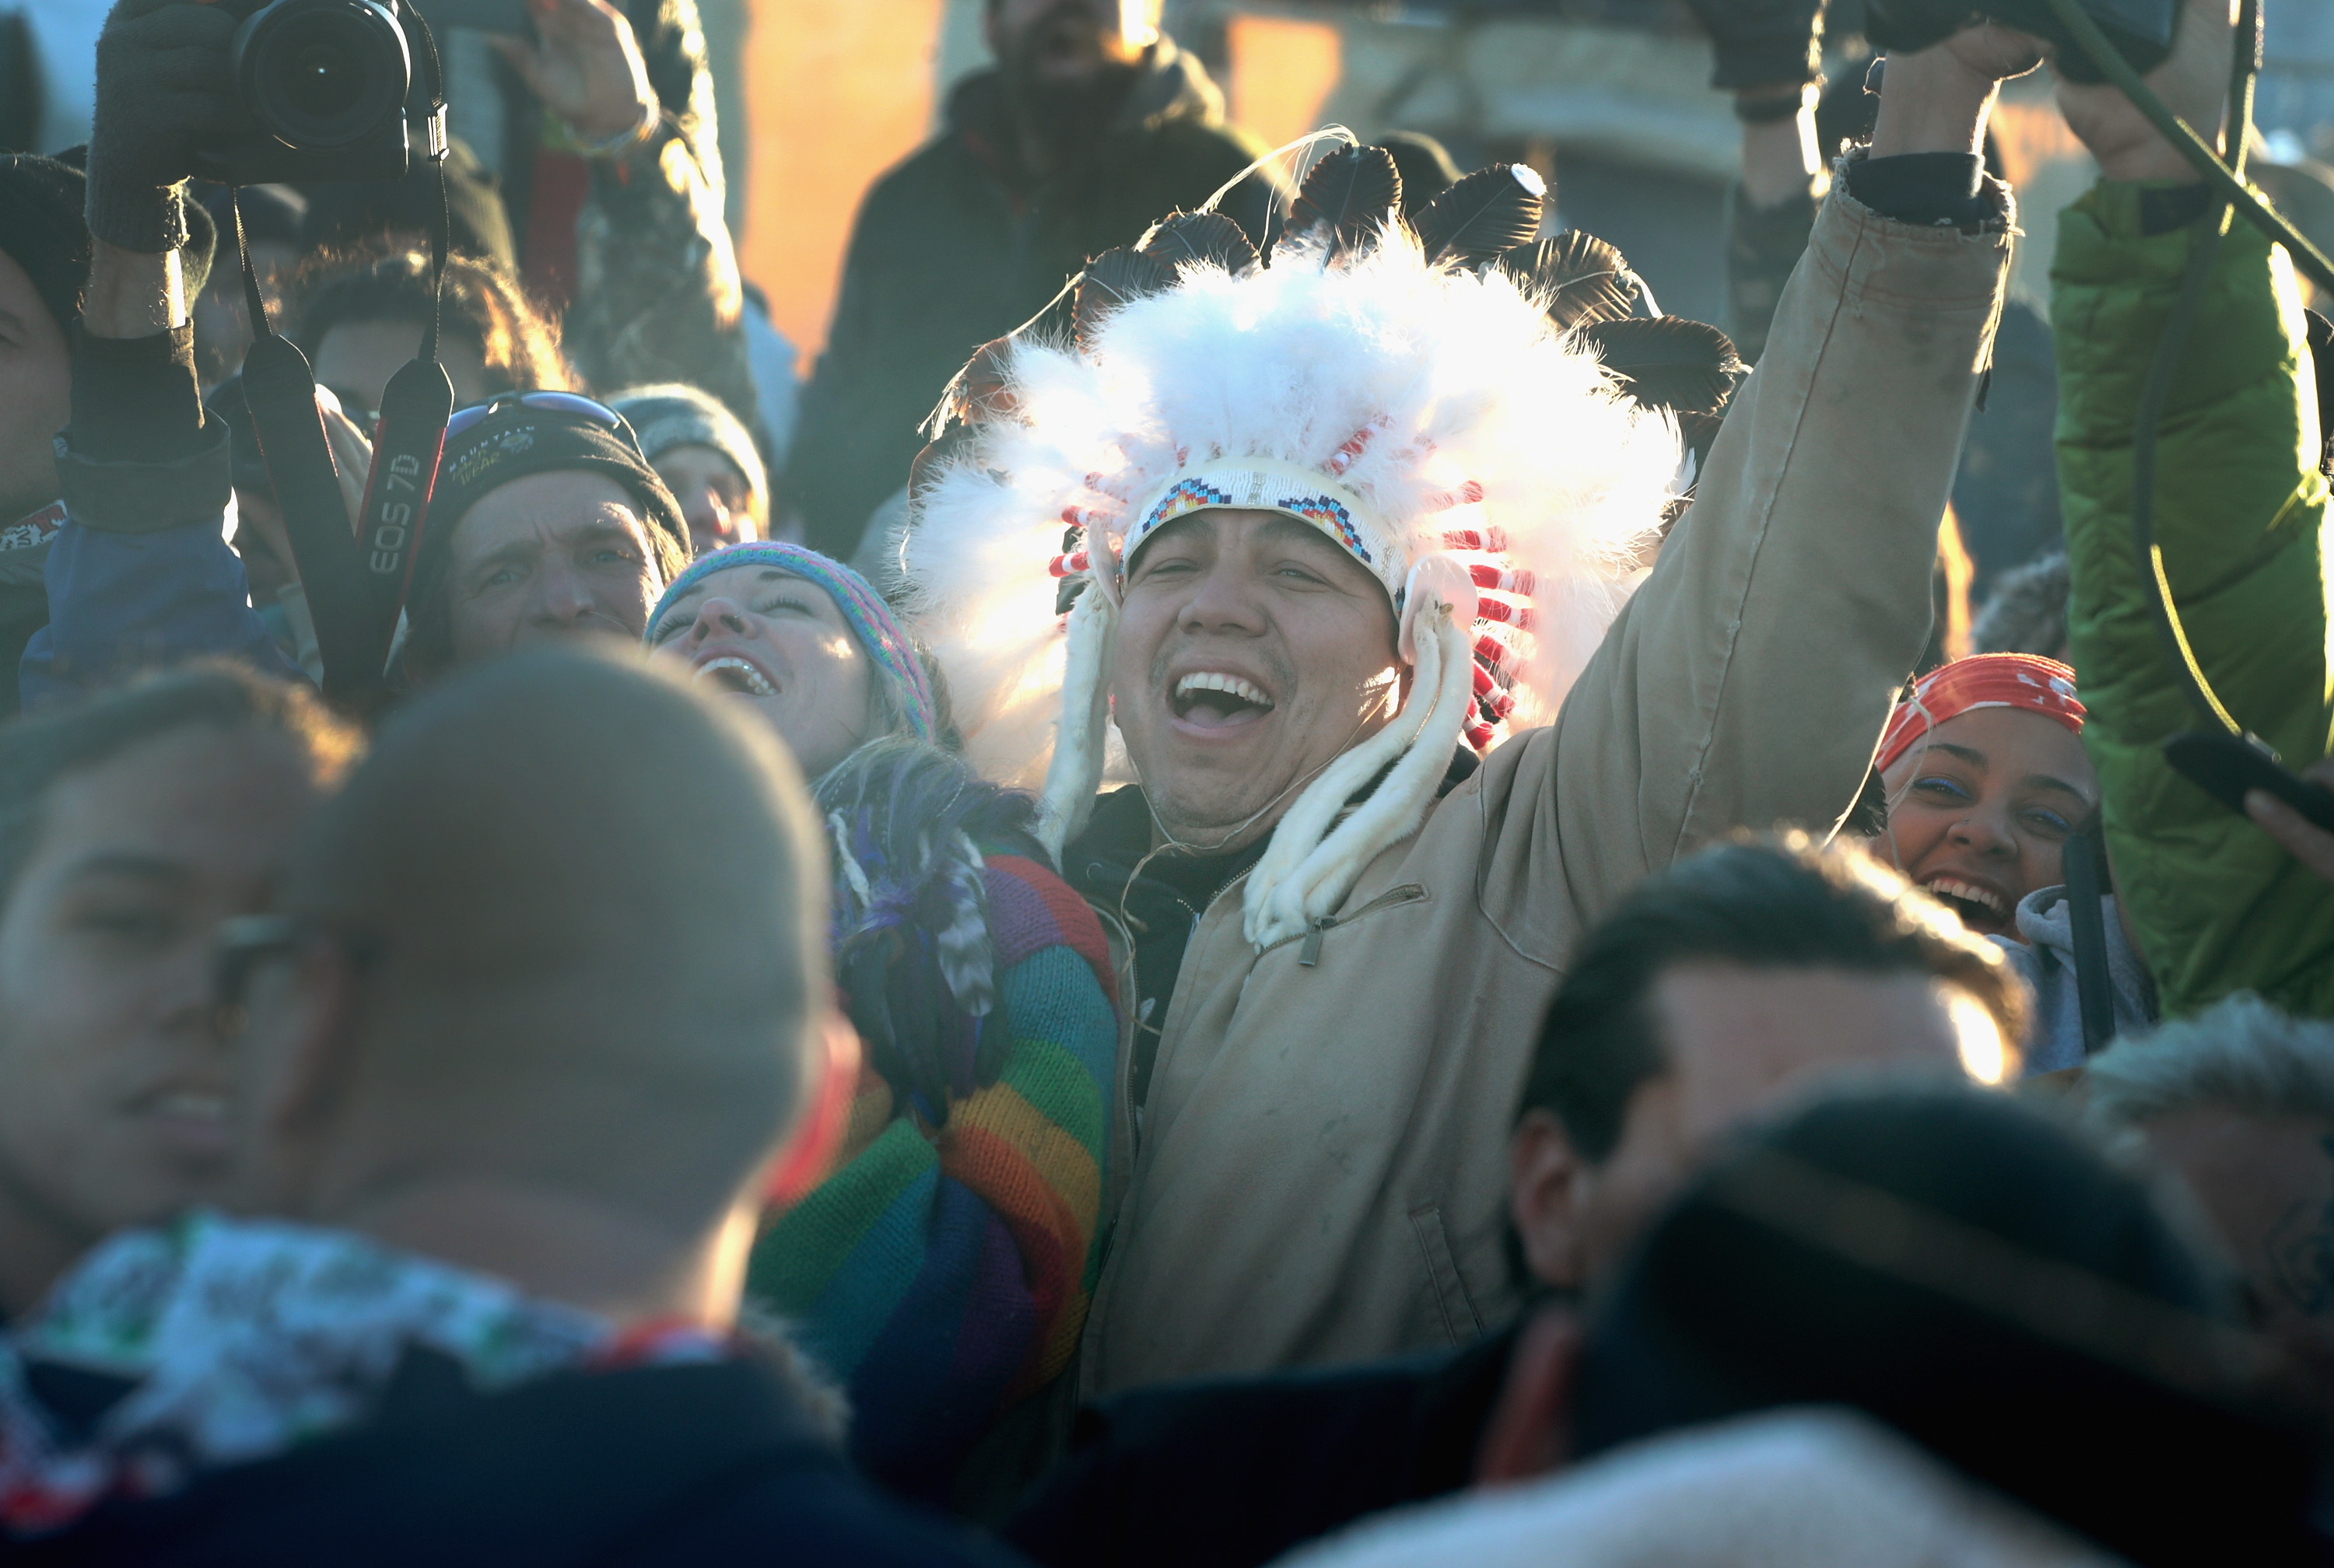 Native American and other activists celebrate after learning an easement had been denied for the Dakota Access Pipeline at Oceti Sakowin Camp on the edge of the Standing Rock Sioux Reservation on December 4, 2016 outside Cannon Ball, North Dakota.